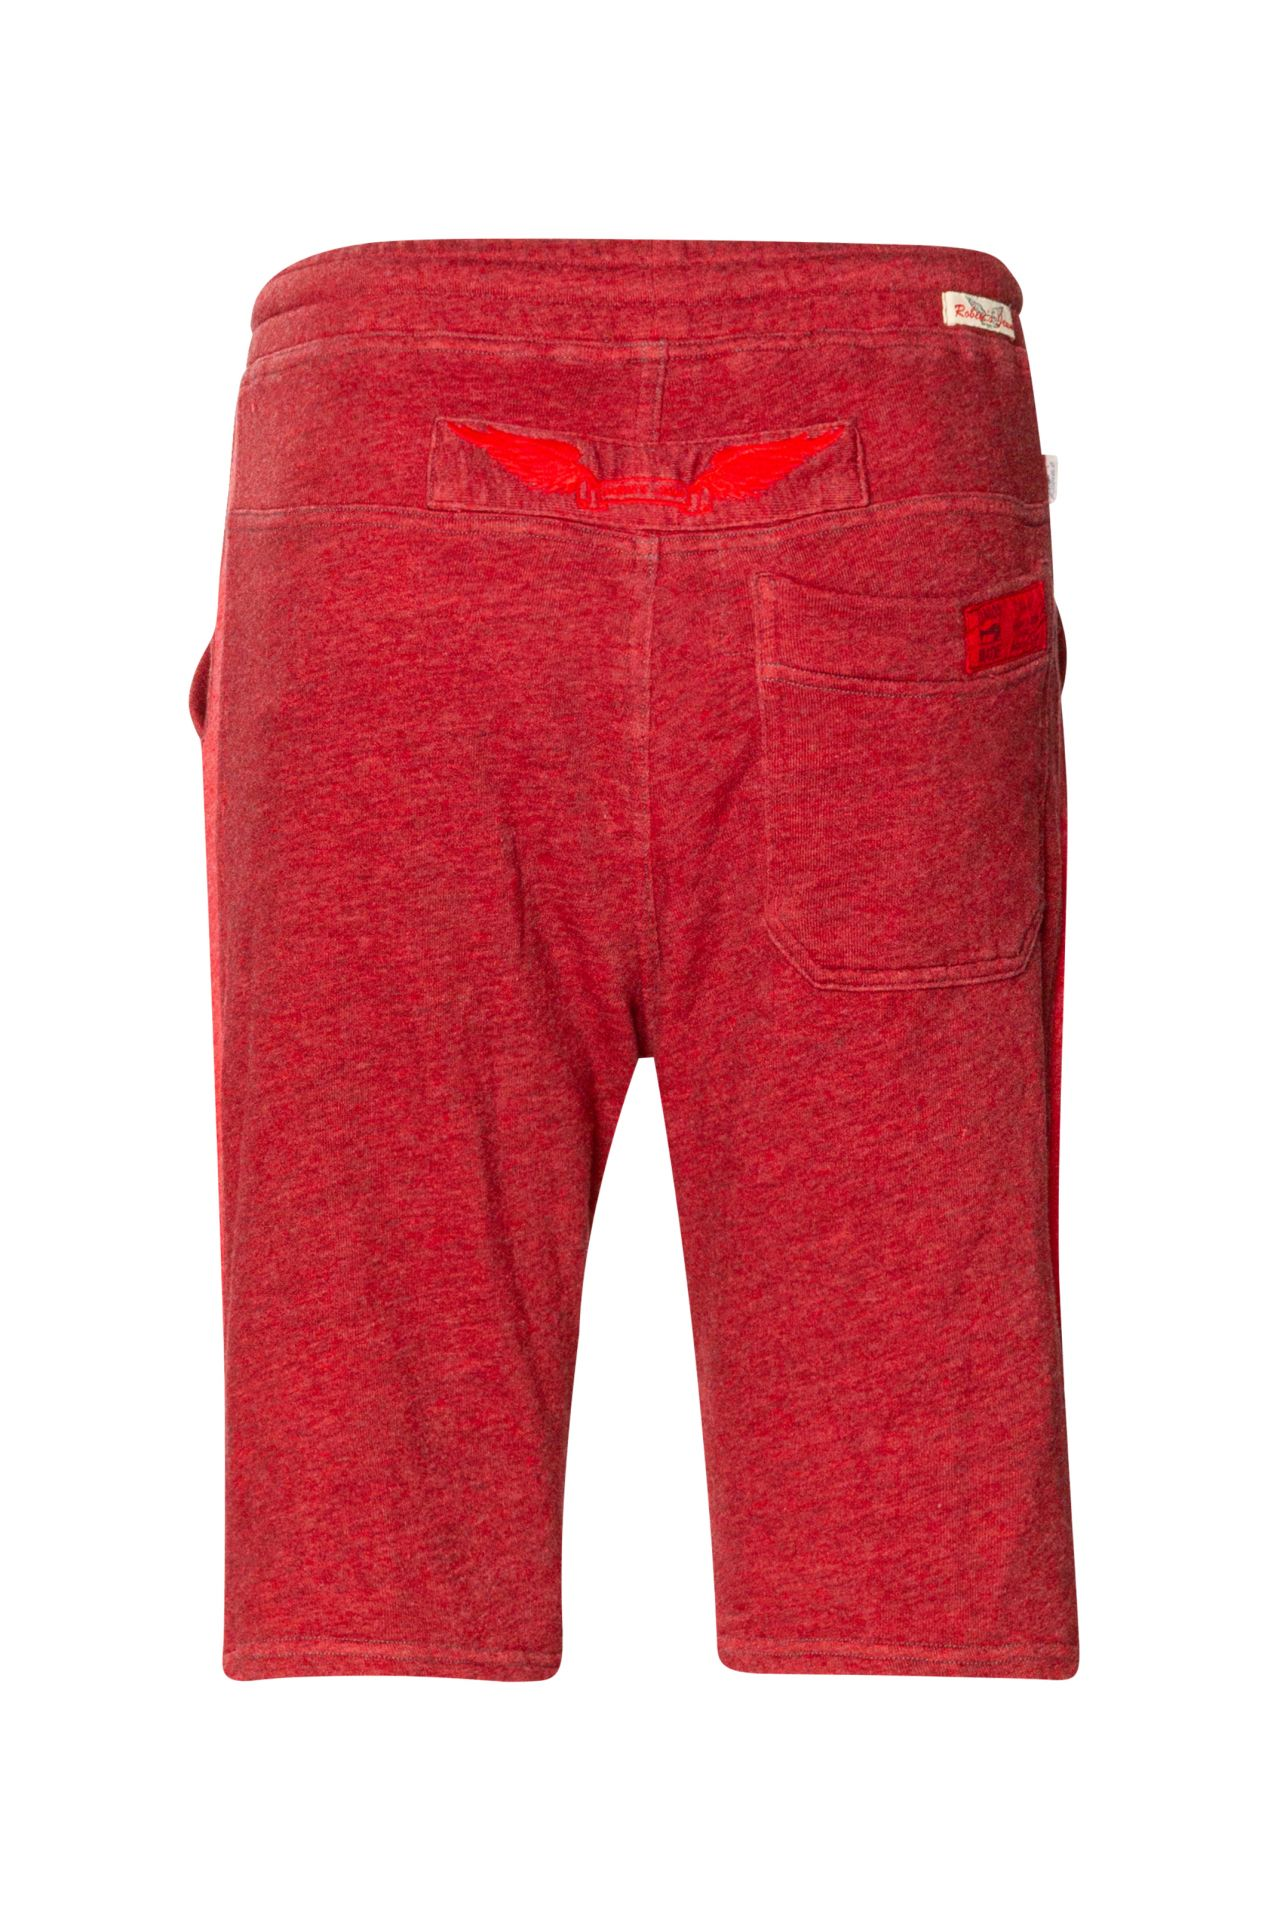 TONAL STRIPE JOGGER SHORTS IN HEATHER RED